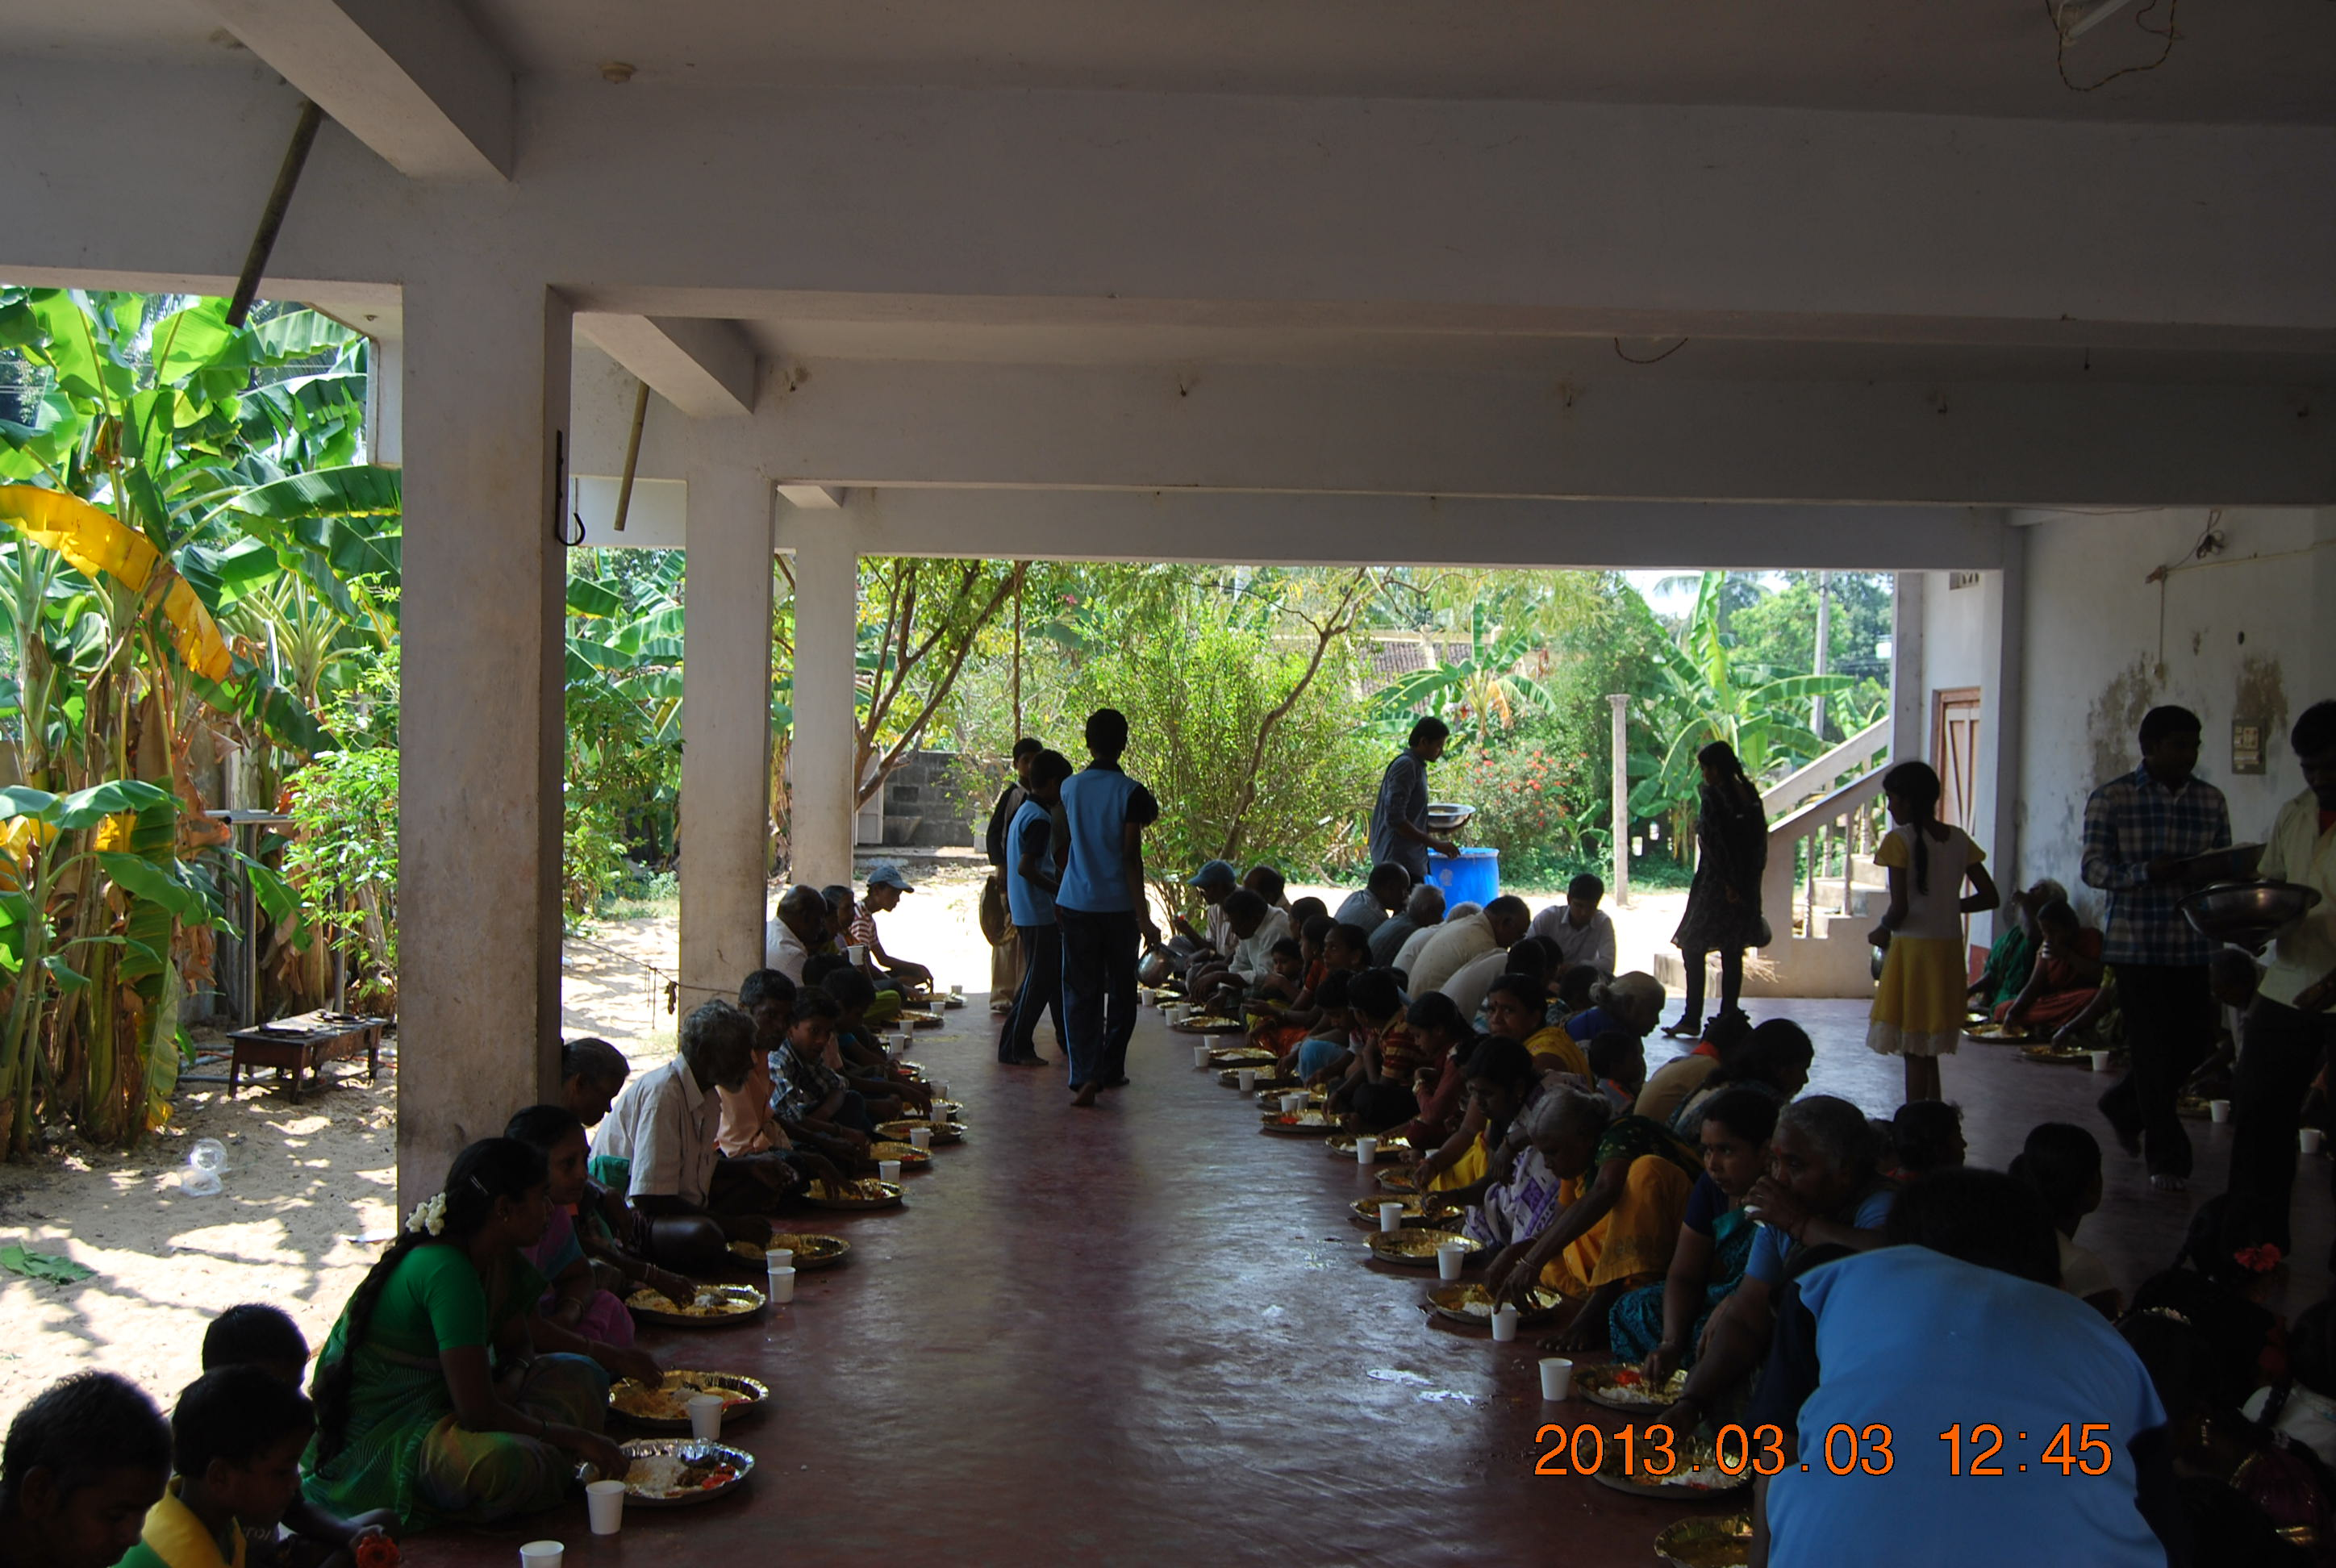 Annadanam on the eve of Sri Ramakrishna Jayanthi. People being fed.